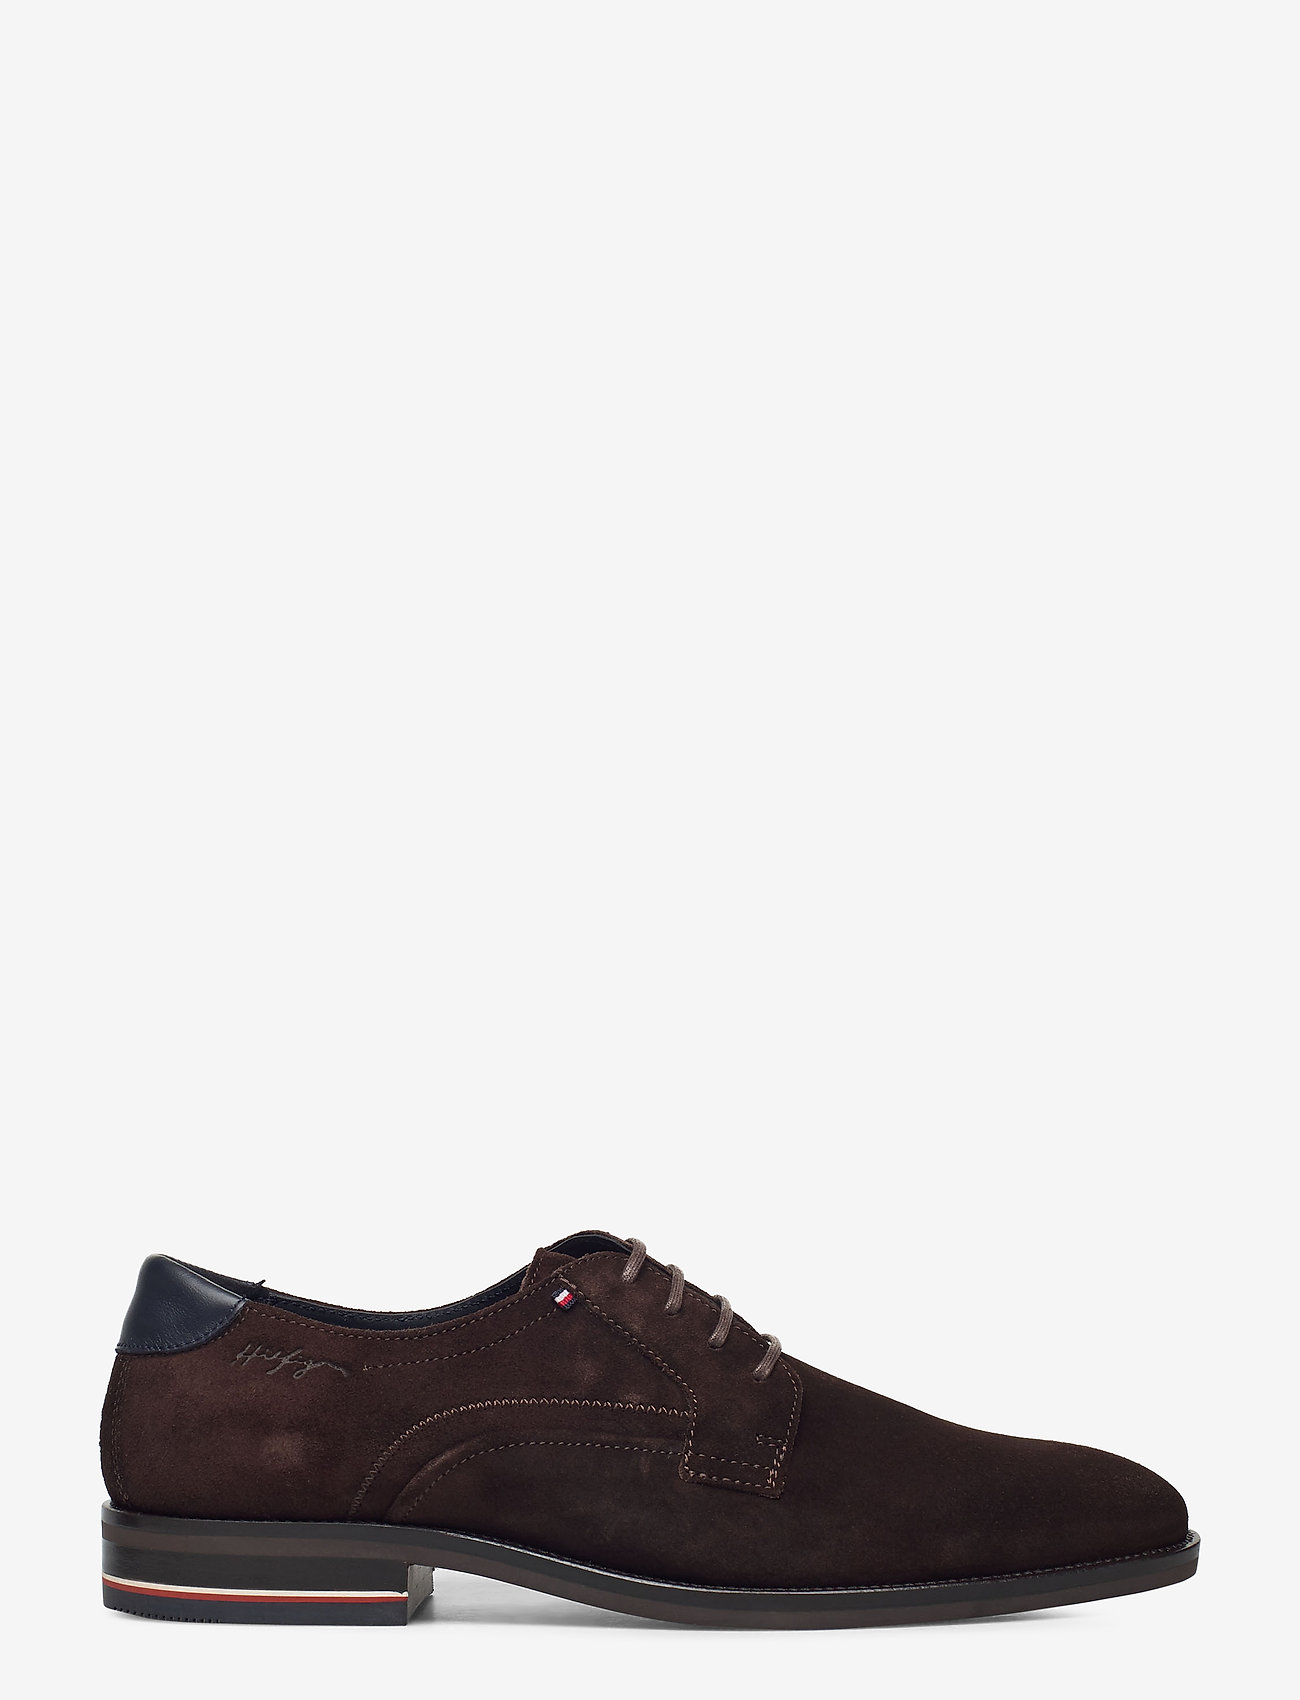 Tommy Hilfiger - SIGNATURE HILFIGER SUEDE SHOE - laced shoes - cocoa - 1